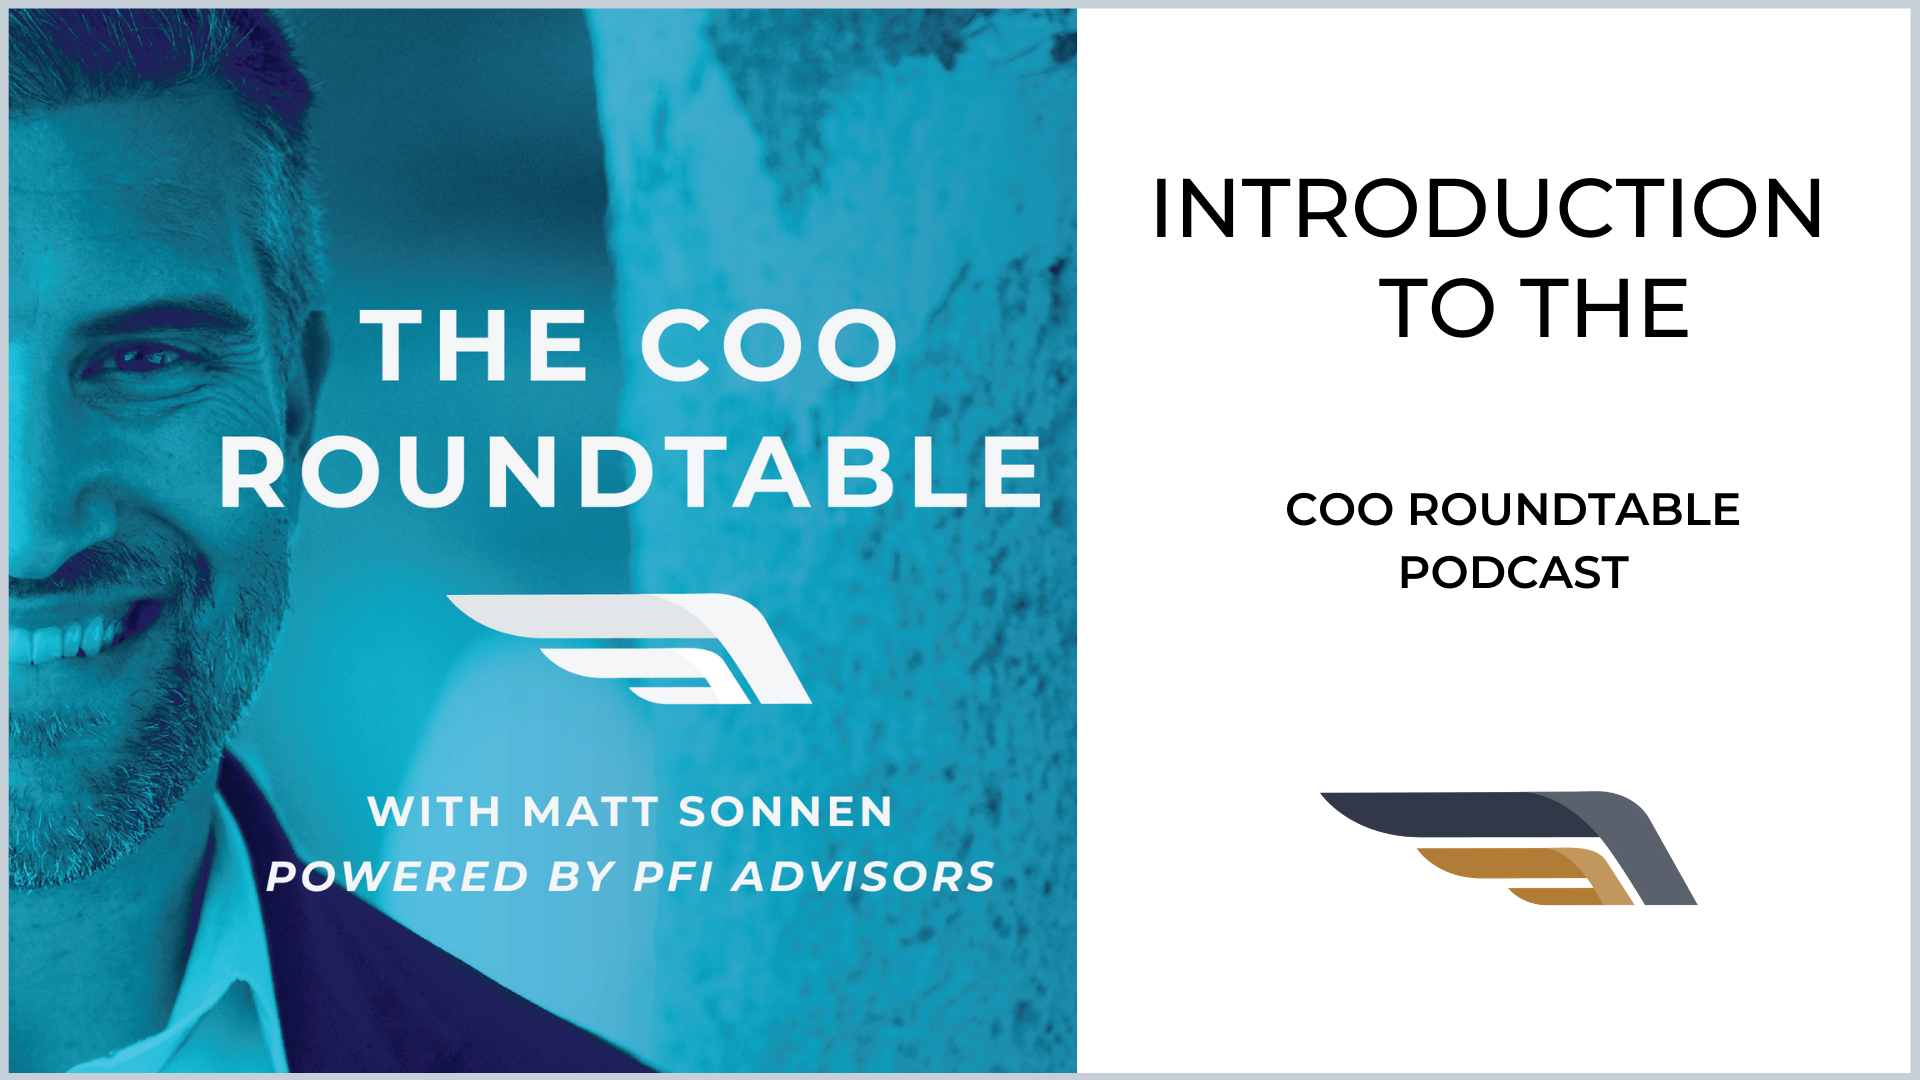 Introducing The COO Roundtable Podcast